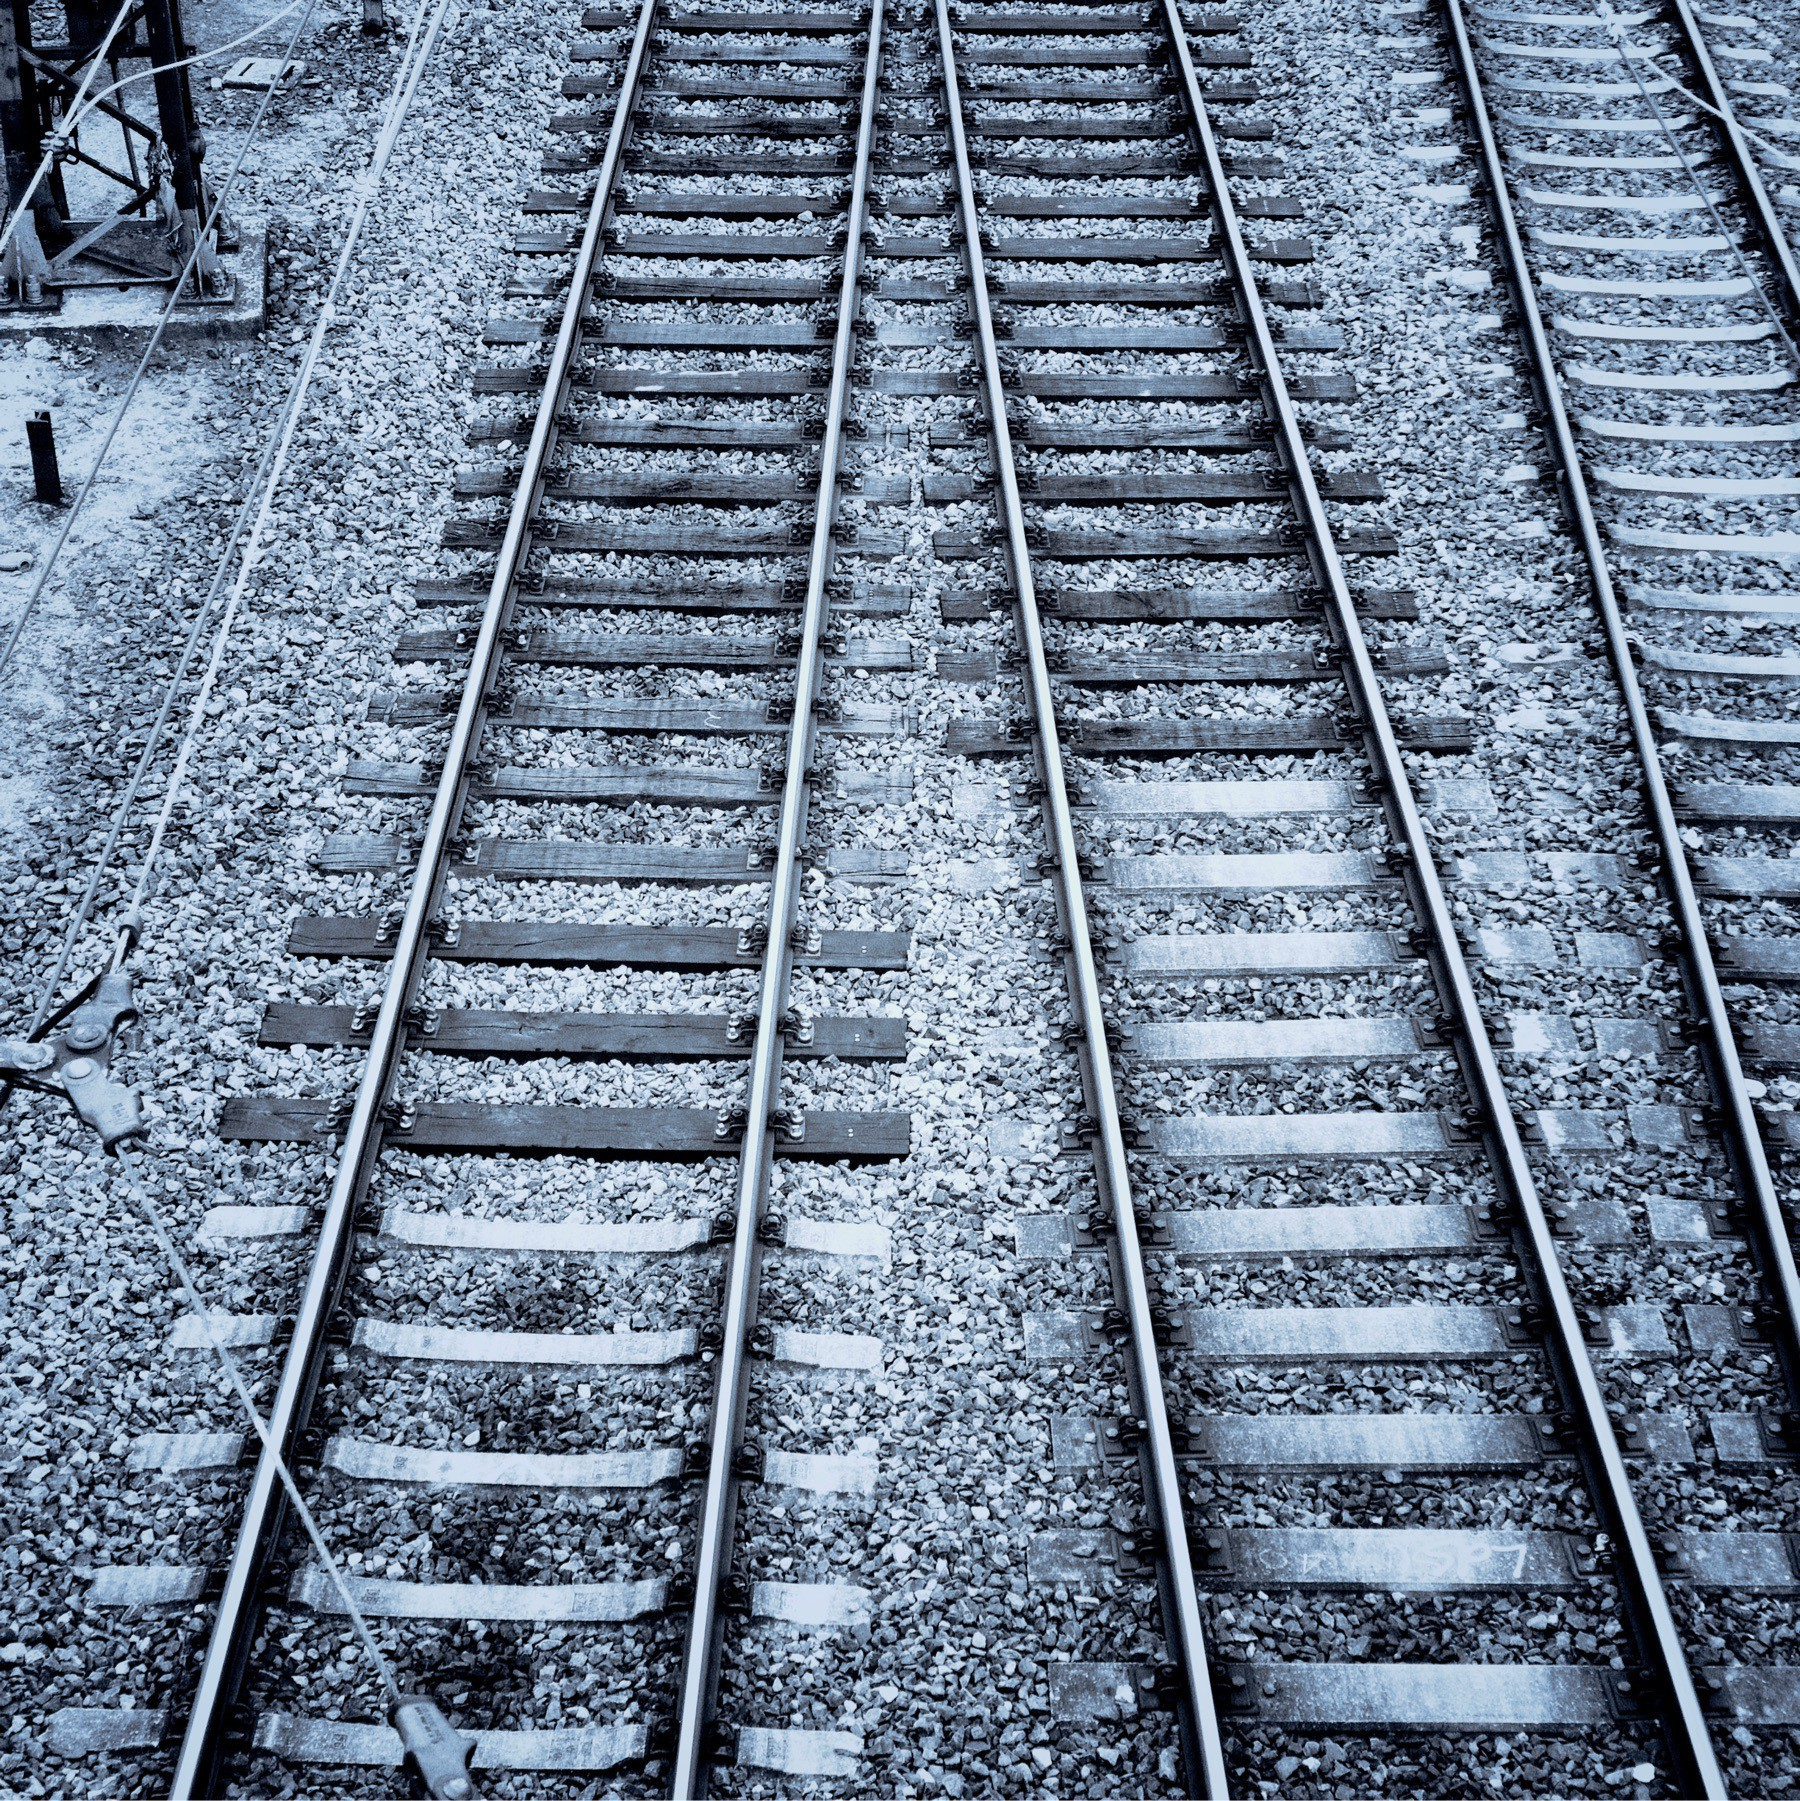 Black and White photo of train tracks.